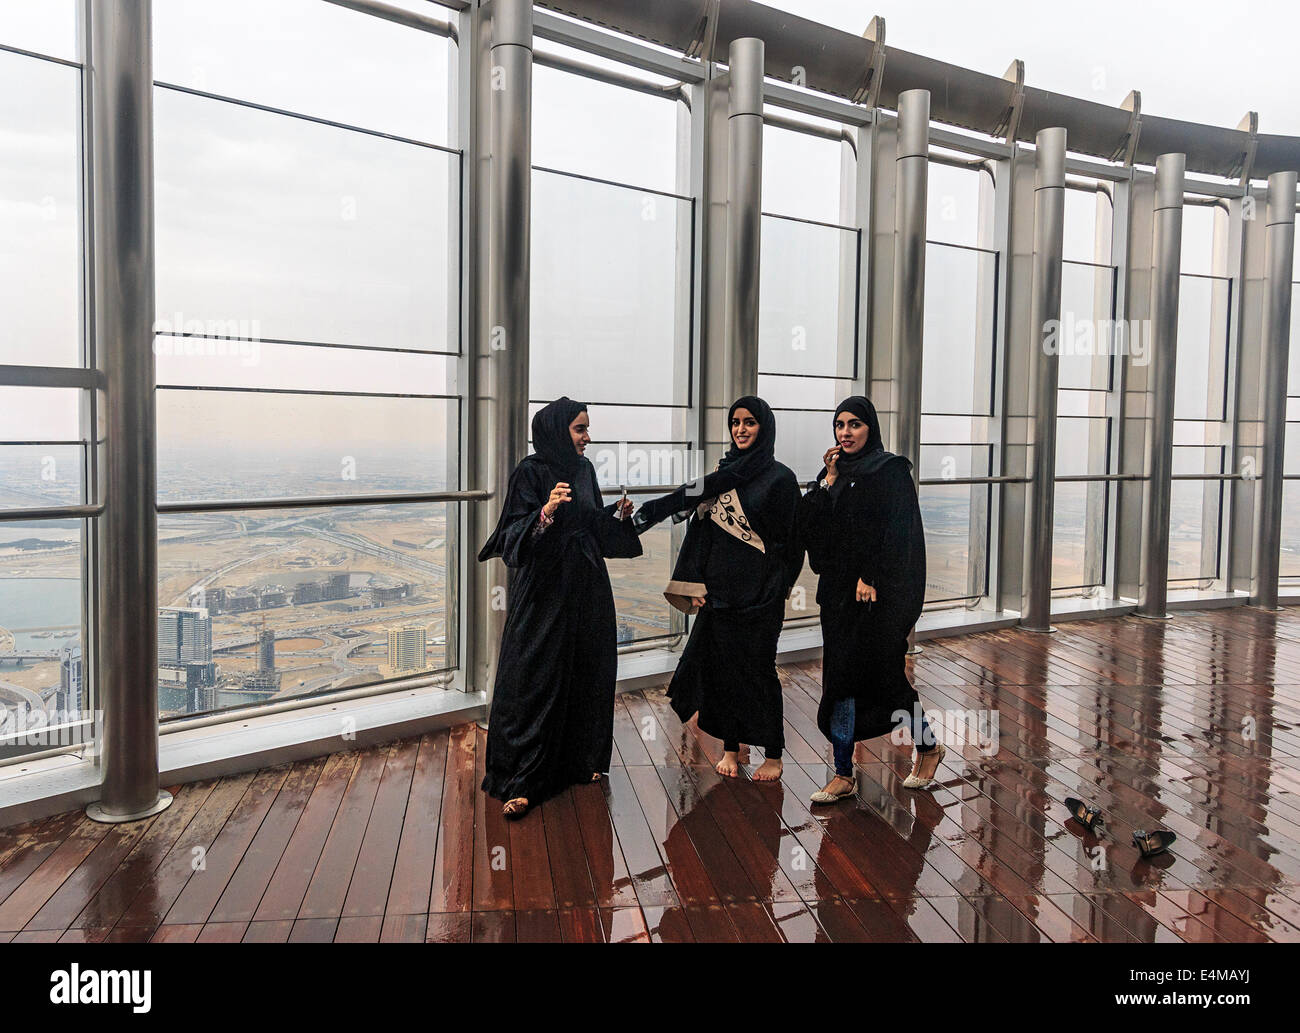 Local women wearing traditional Muslim burka robes arrive to view the city of Dubai from the top of the Burj Khalifa - Stock Image